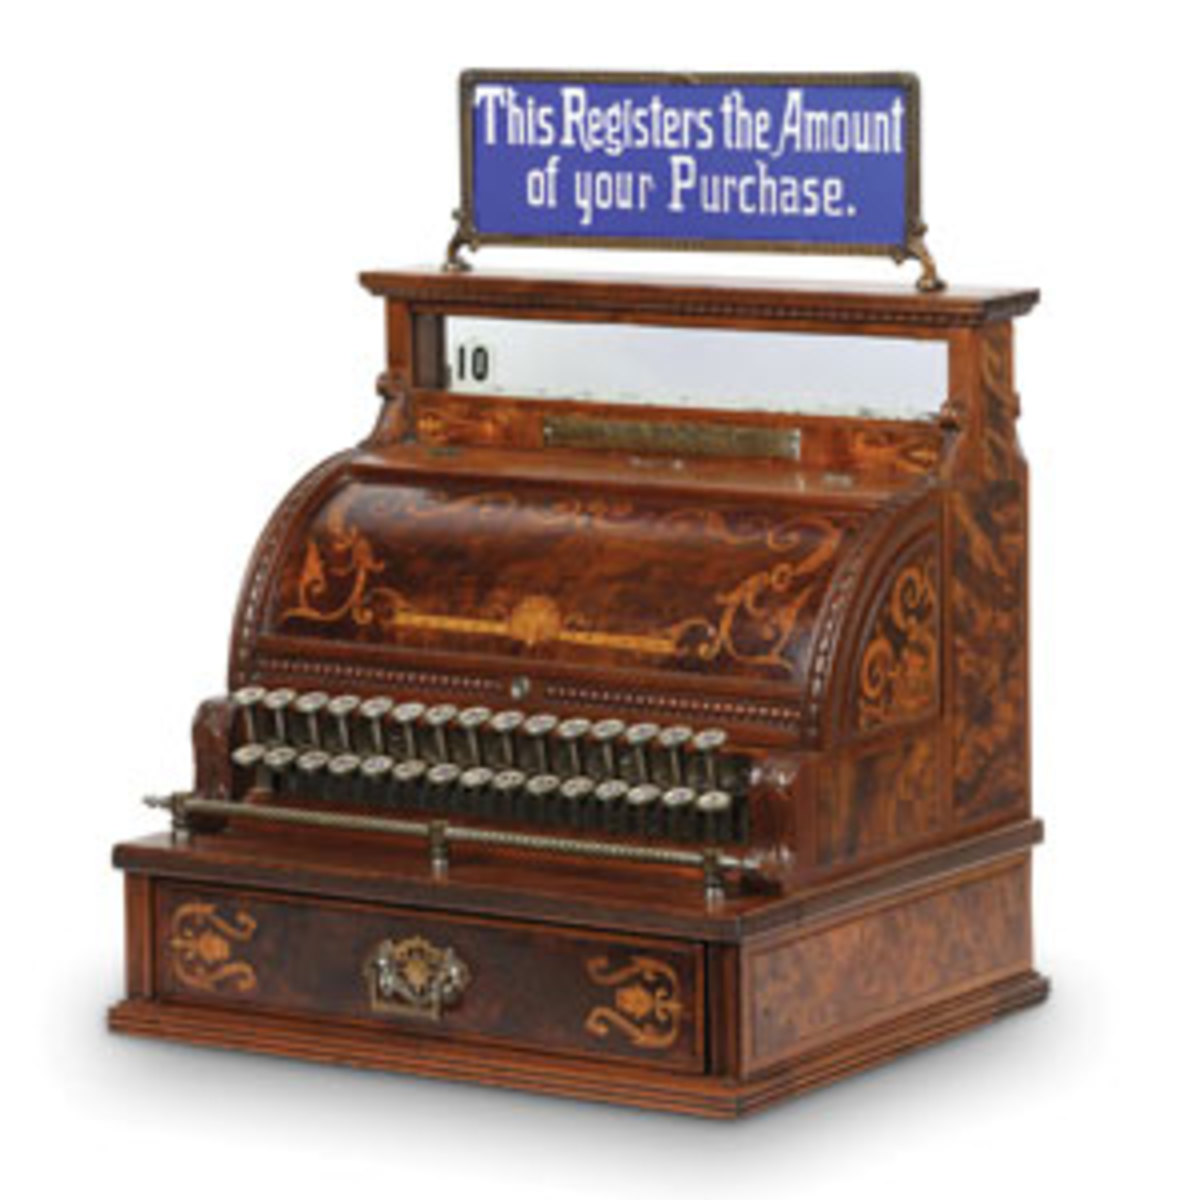 National Model 3 cash register, made in America in the 1890s, with rare cobalt cut-to-clear glass top sign, $11,500.